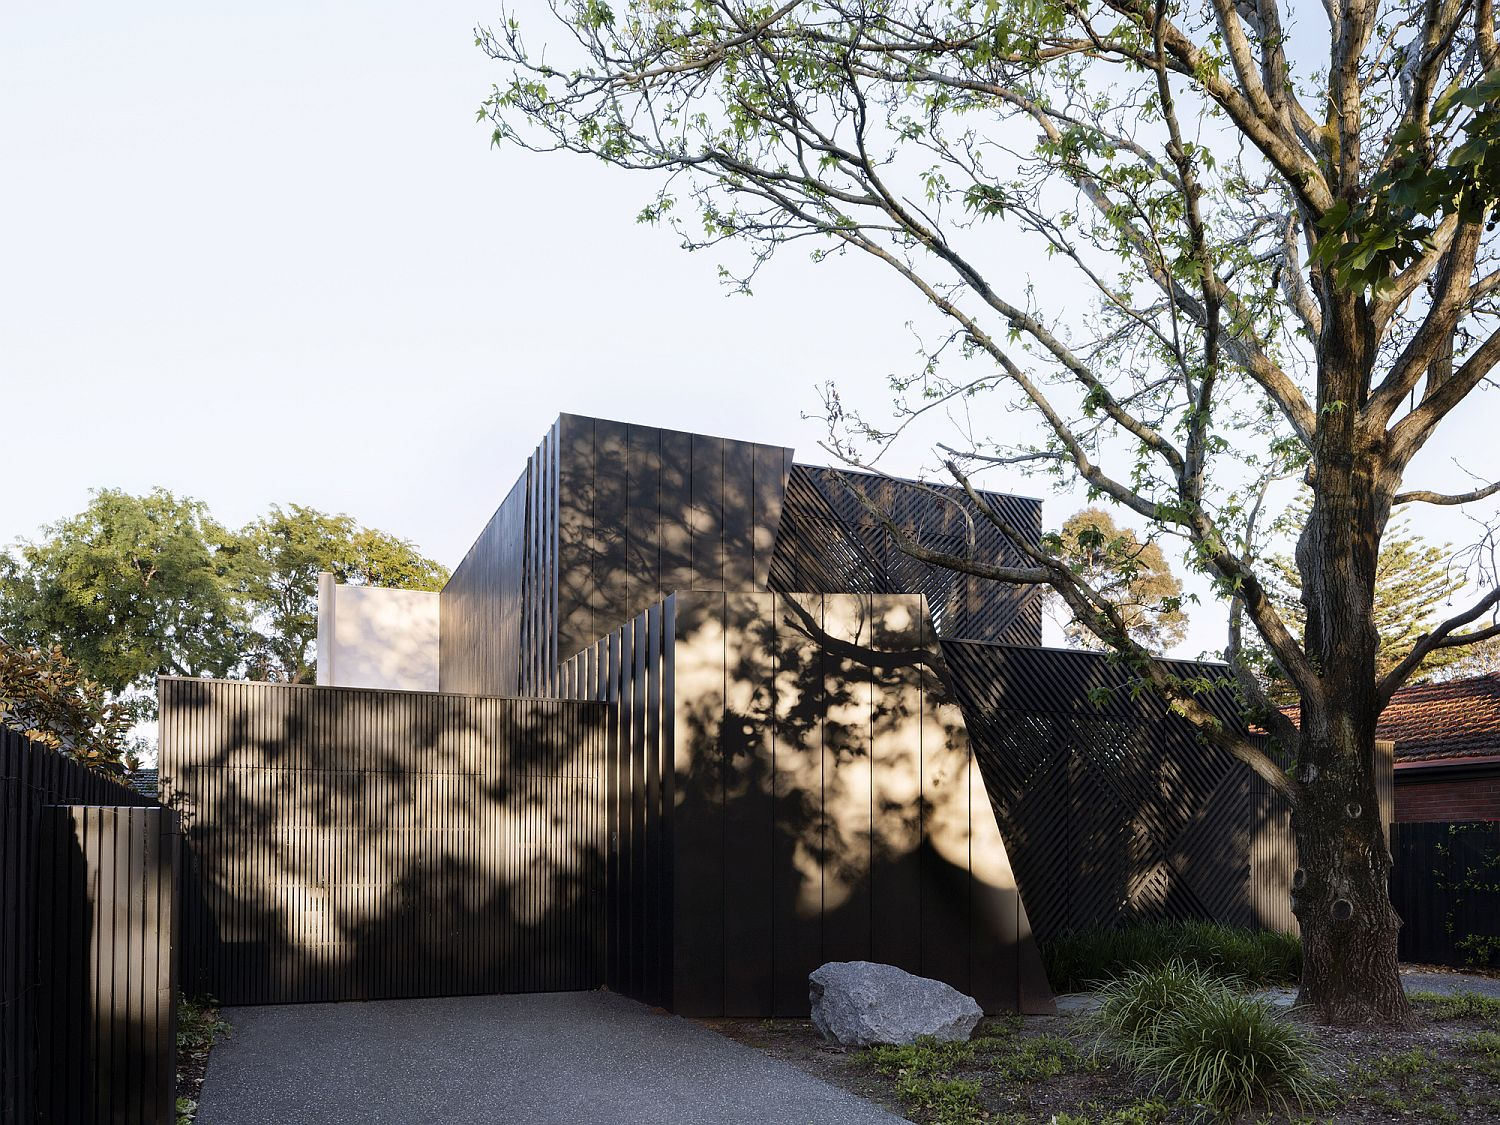 Dark and dashing street facade of the revamped 1970's Aussie home